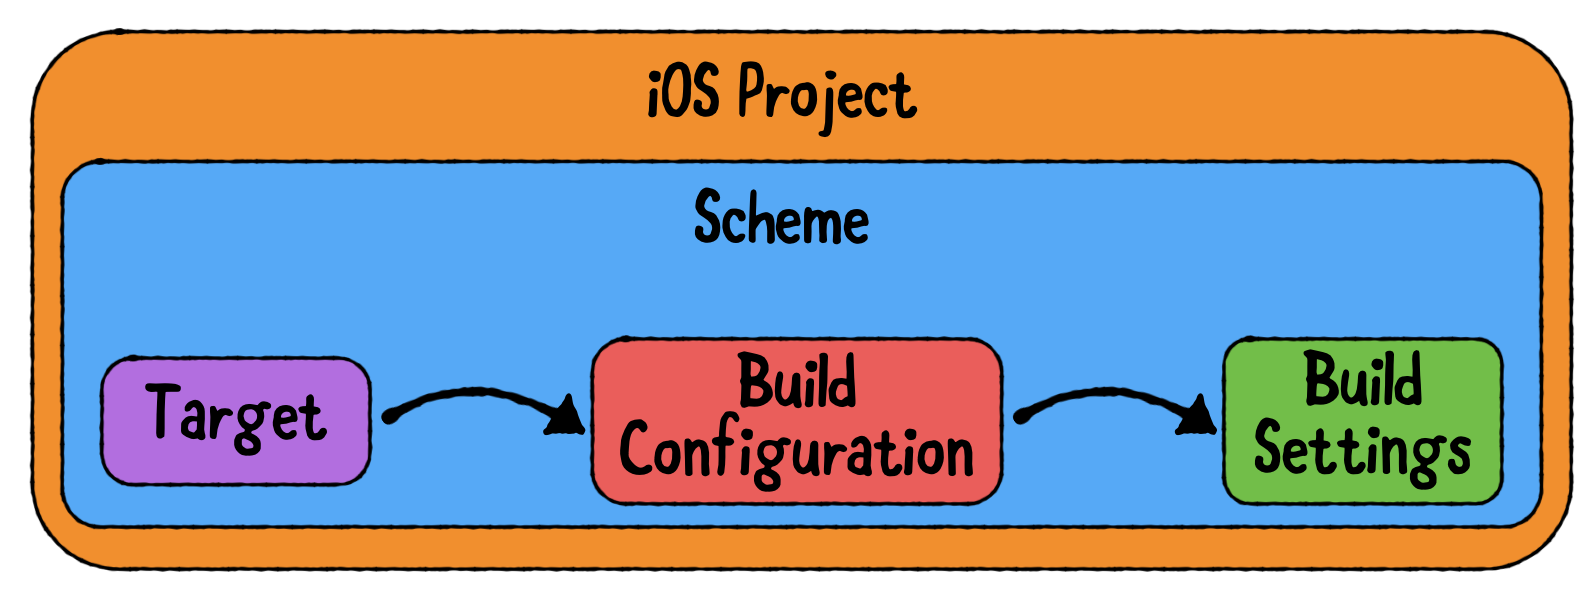 A scheme sets the targets to be built and the configuration to use.